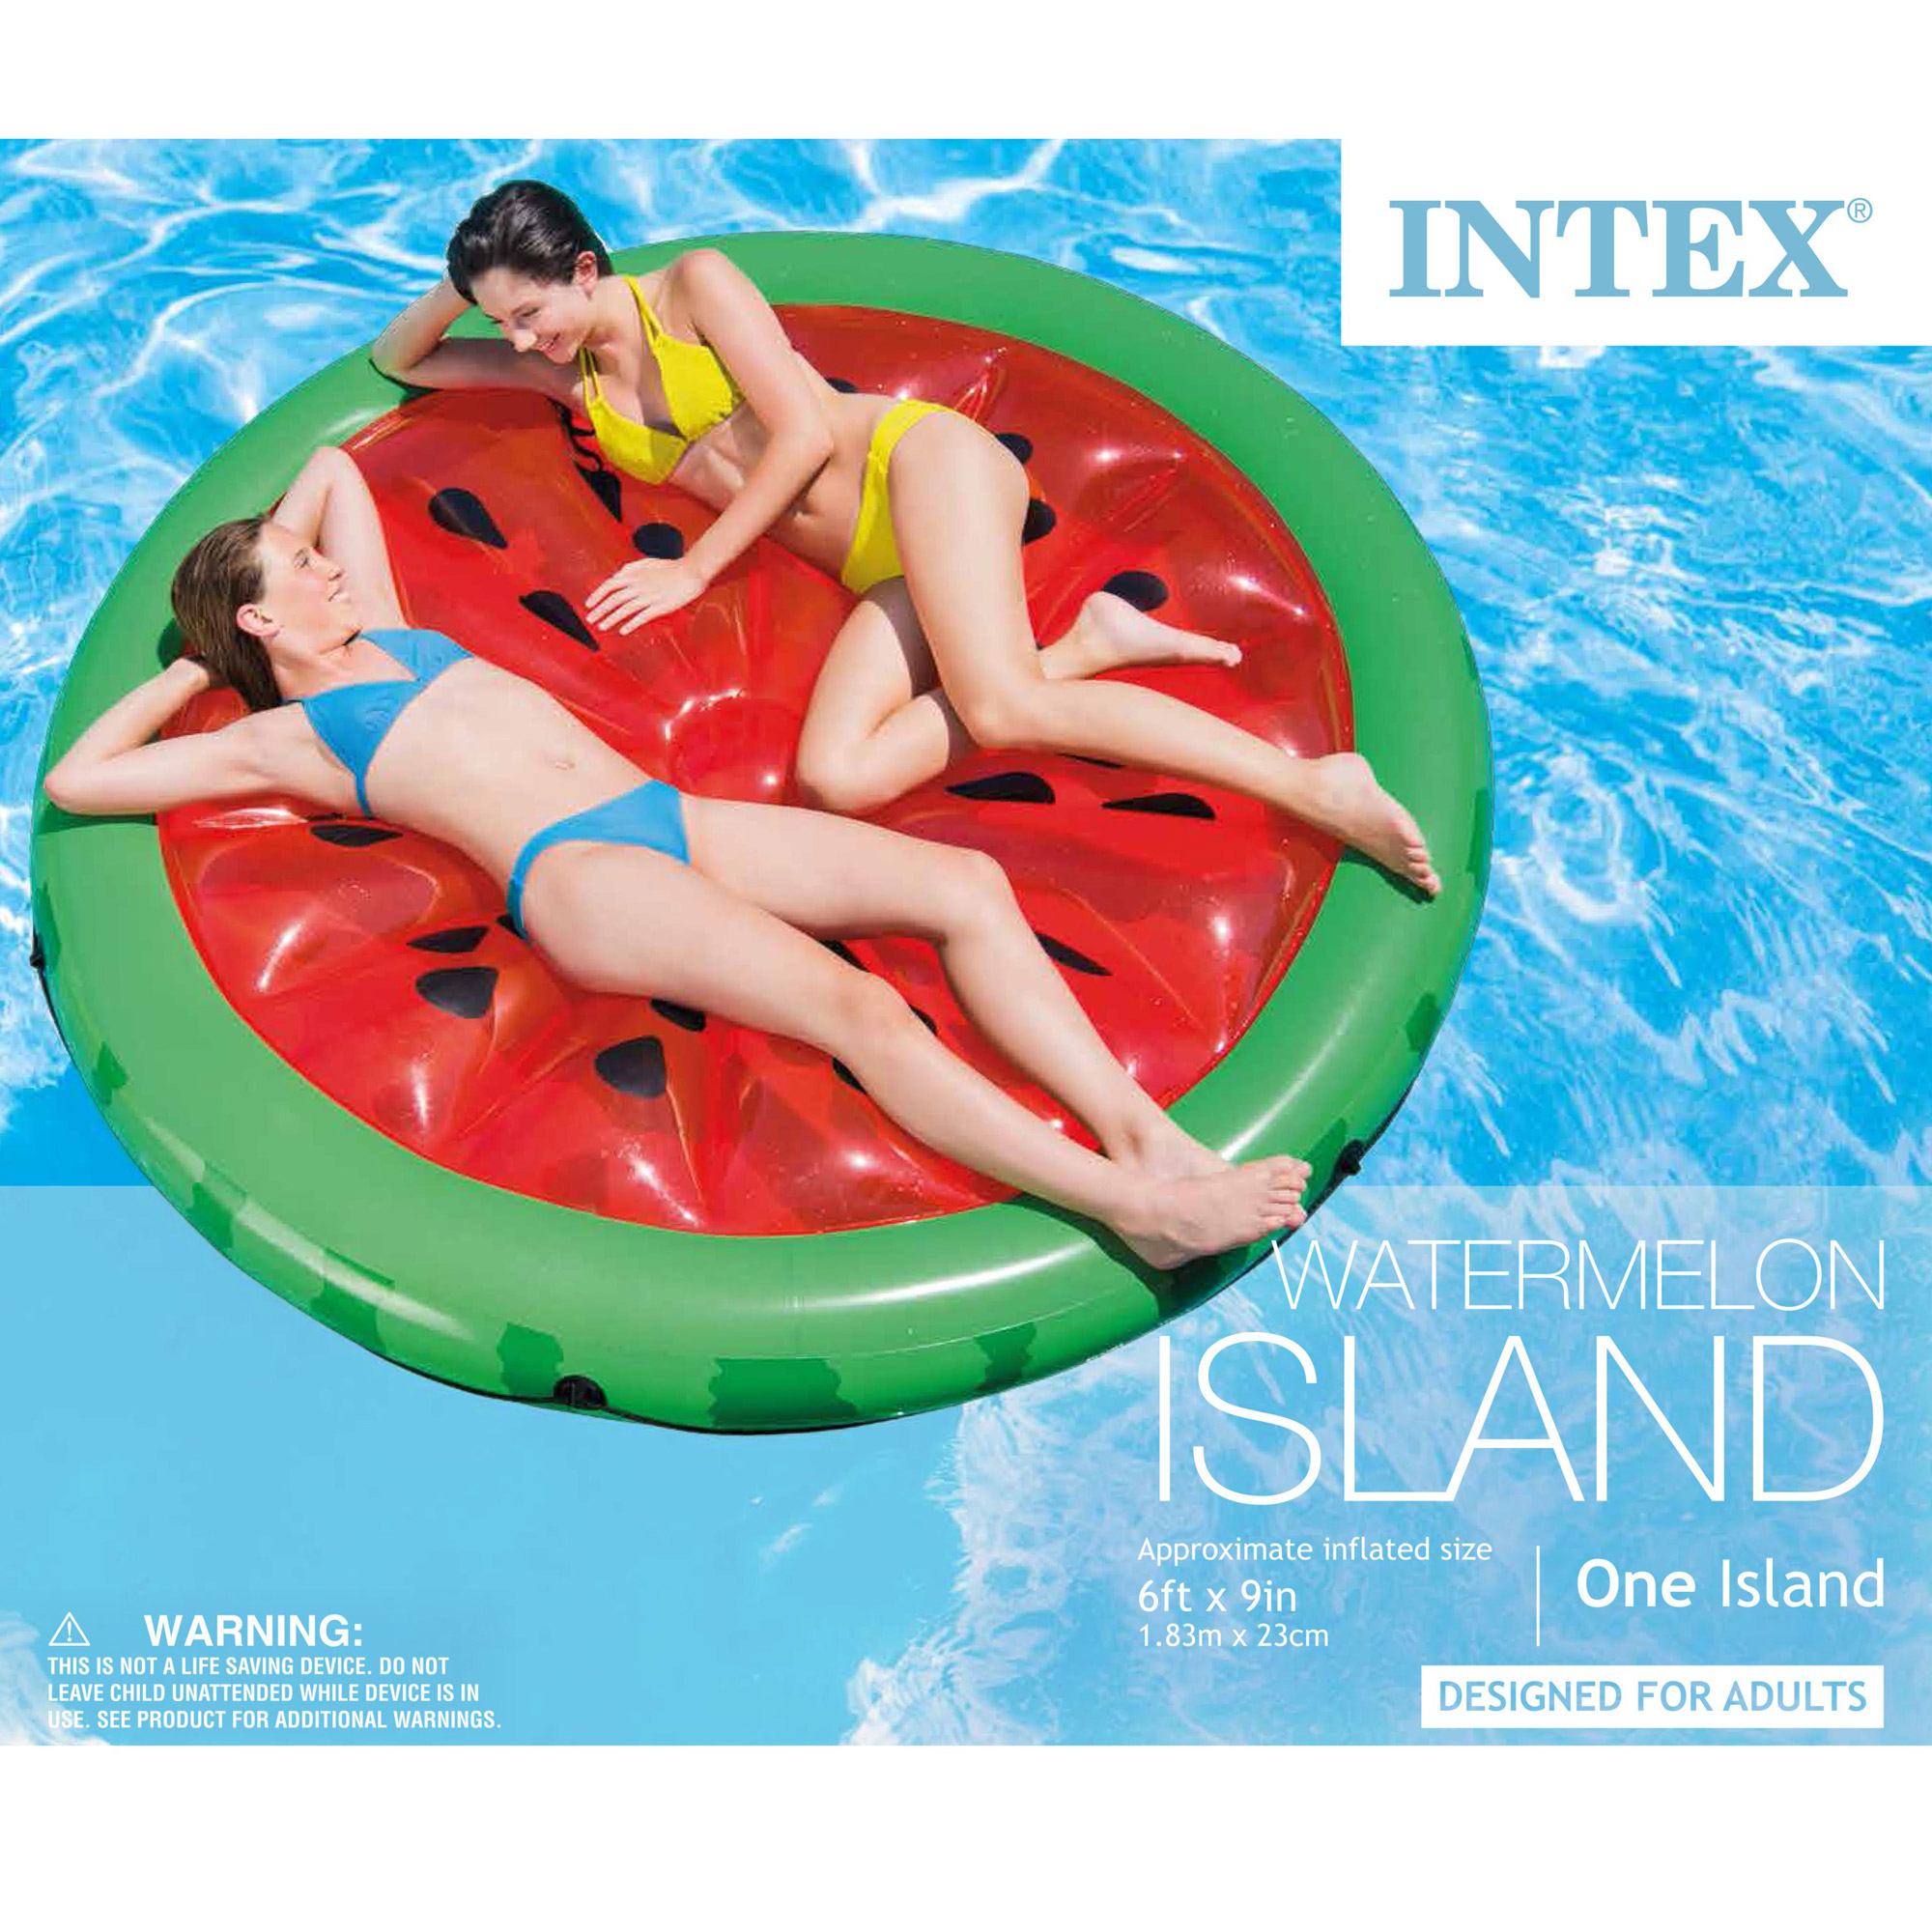 Intex giant inflatable 72 inch watermelon island swimming pool raft 56283ep ebay Intex inflatable swimming pool